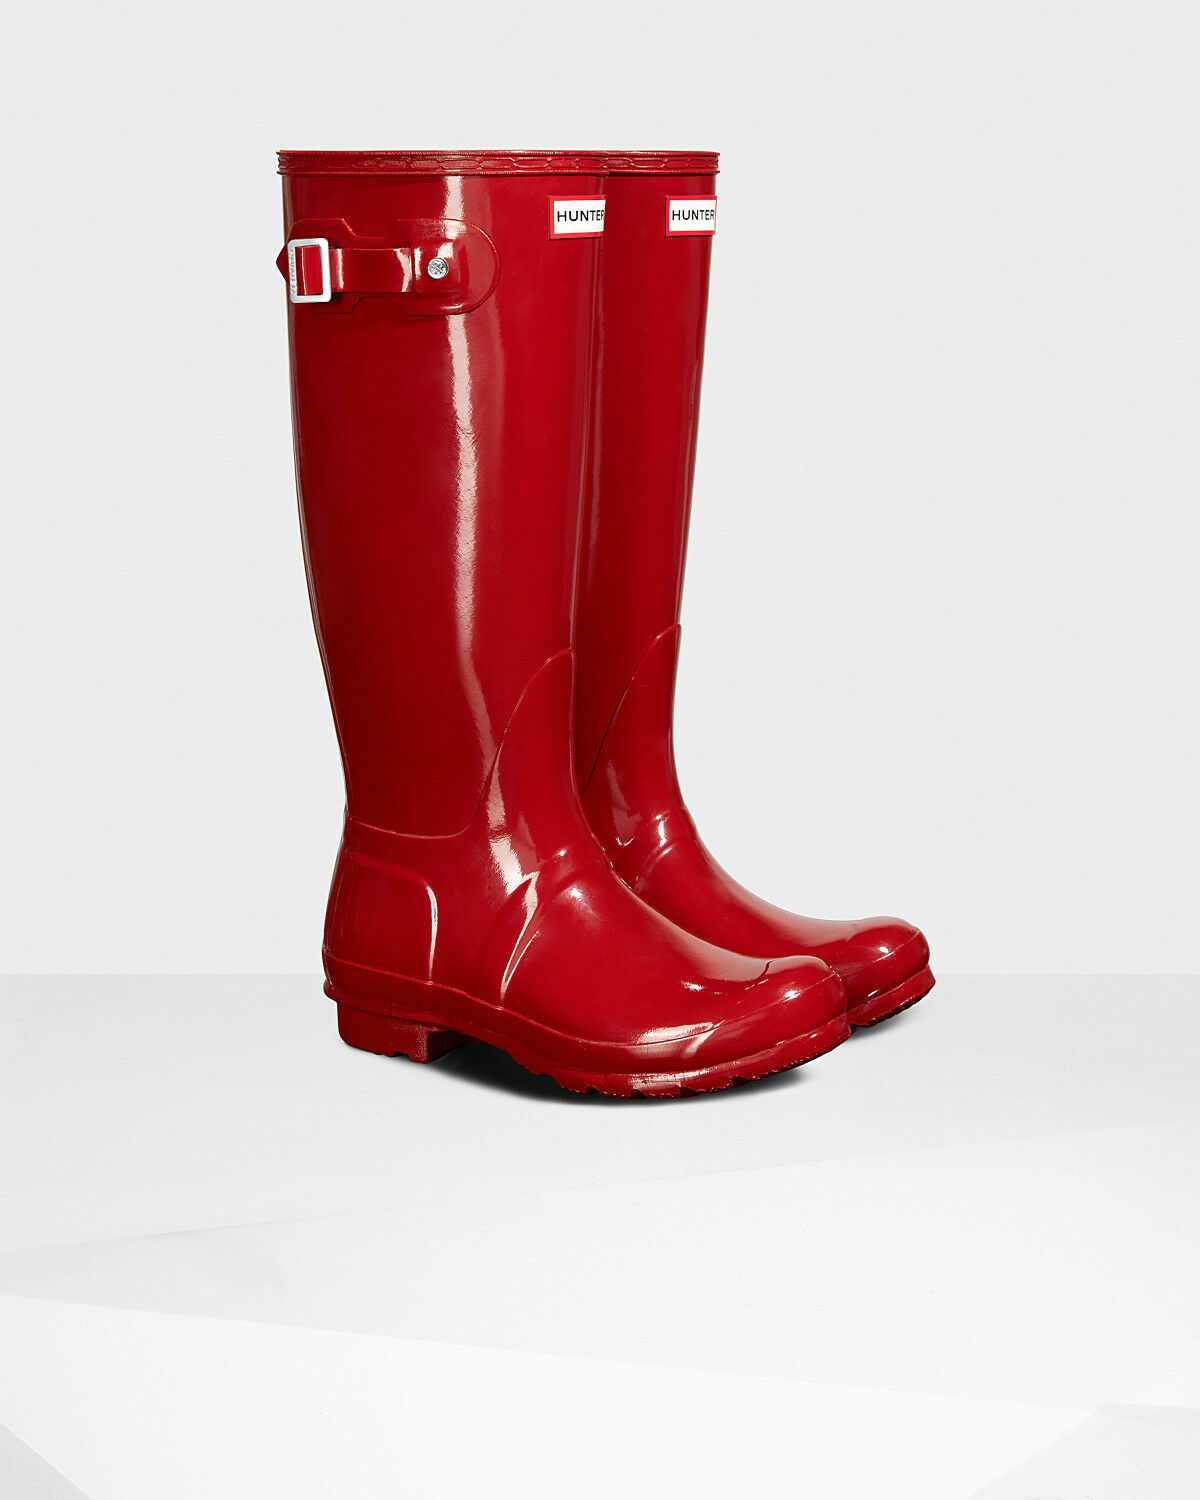 Hunter Original Tall Rain Boots RED Gloss Size 7